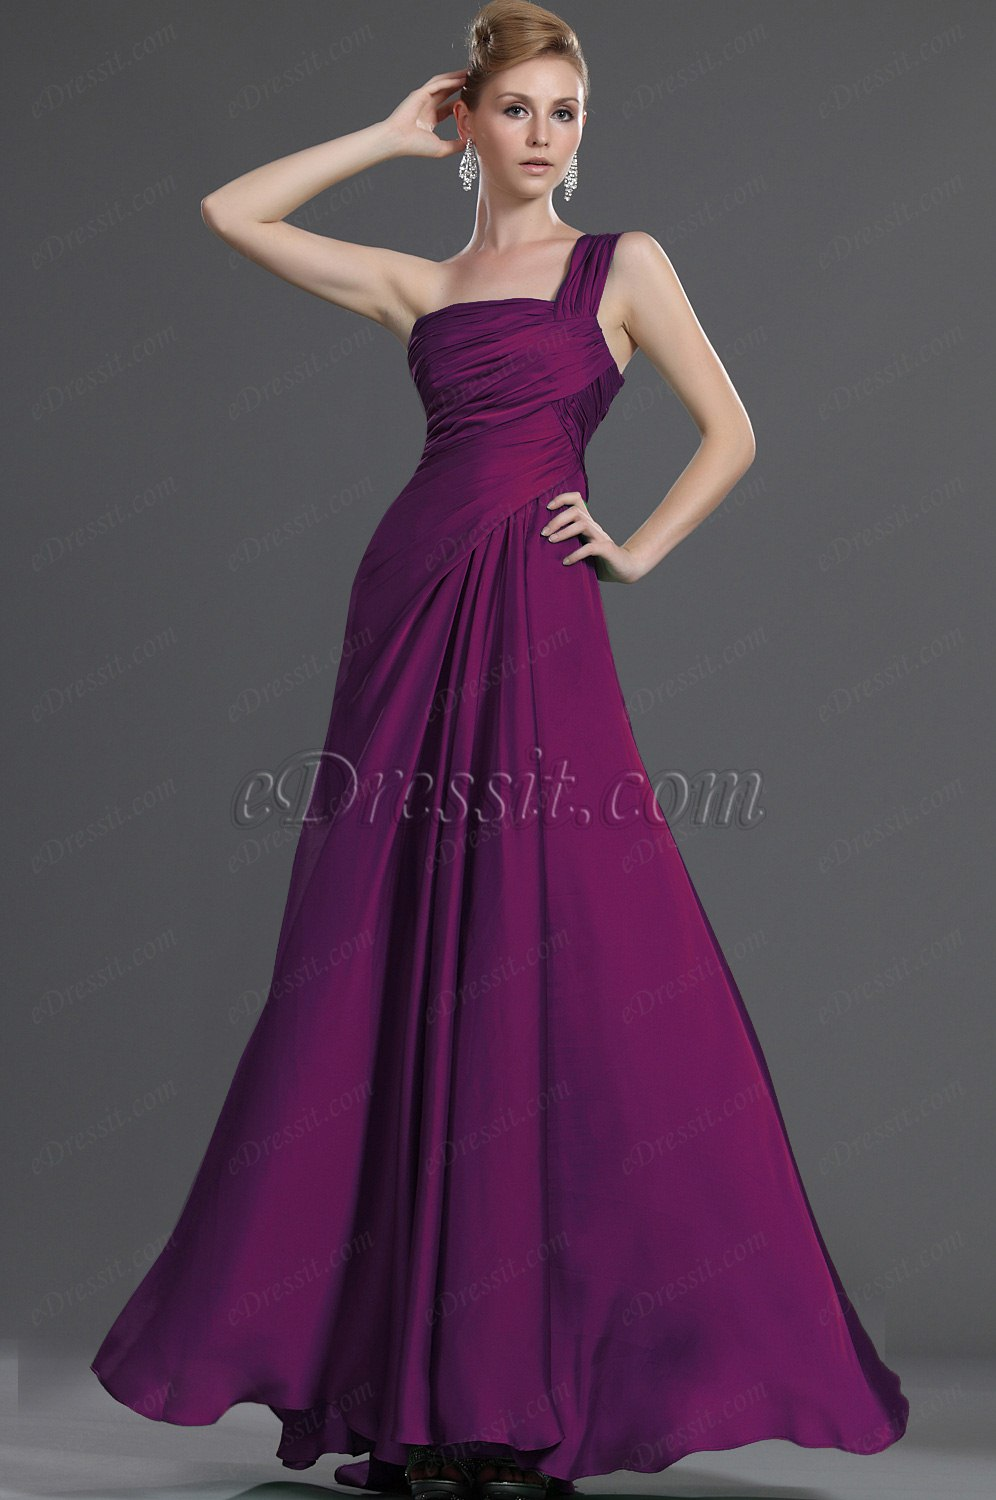 Clearance Sale !eDressit New Hot Style One Shoulder Evening Dress (00120304B)